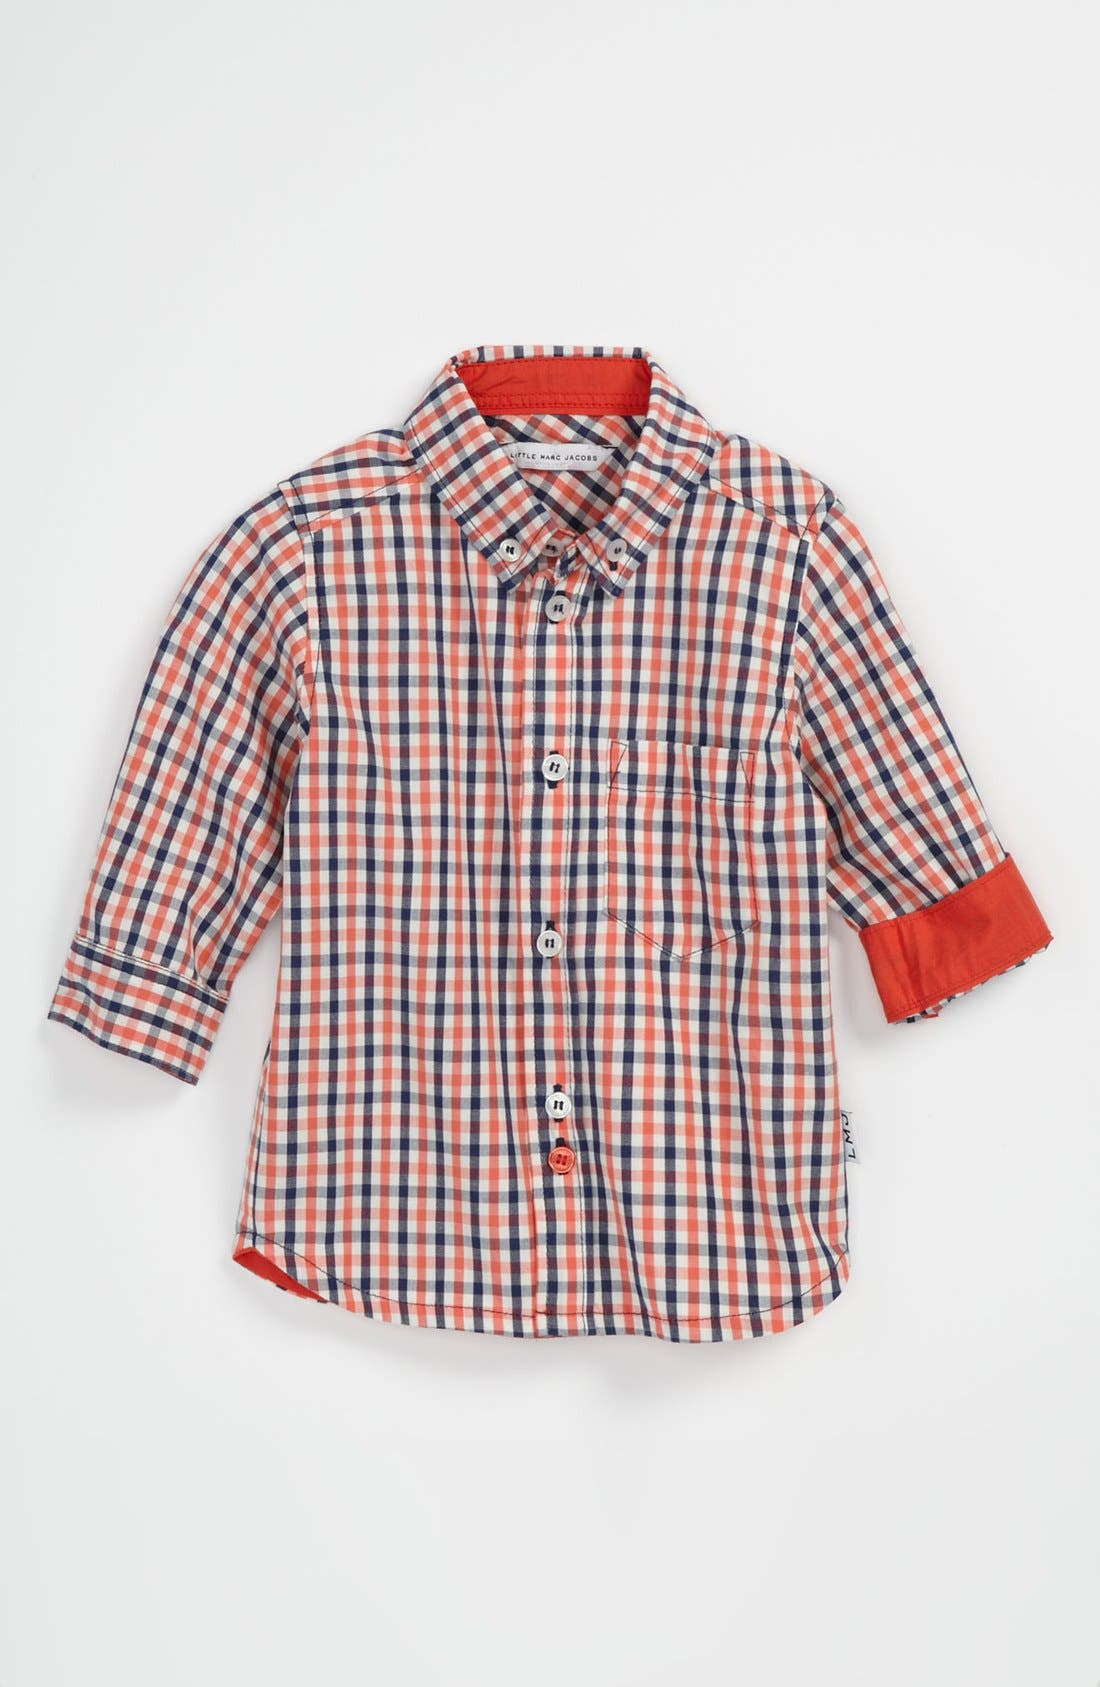 Alternate Image 1 Selected - LITTLE MARC JACOBS Plaid Woven Shirt (Toddler)